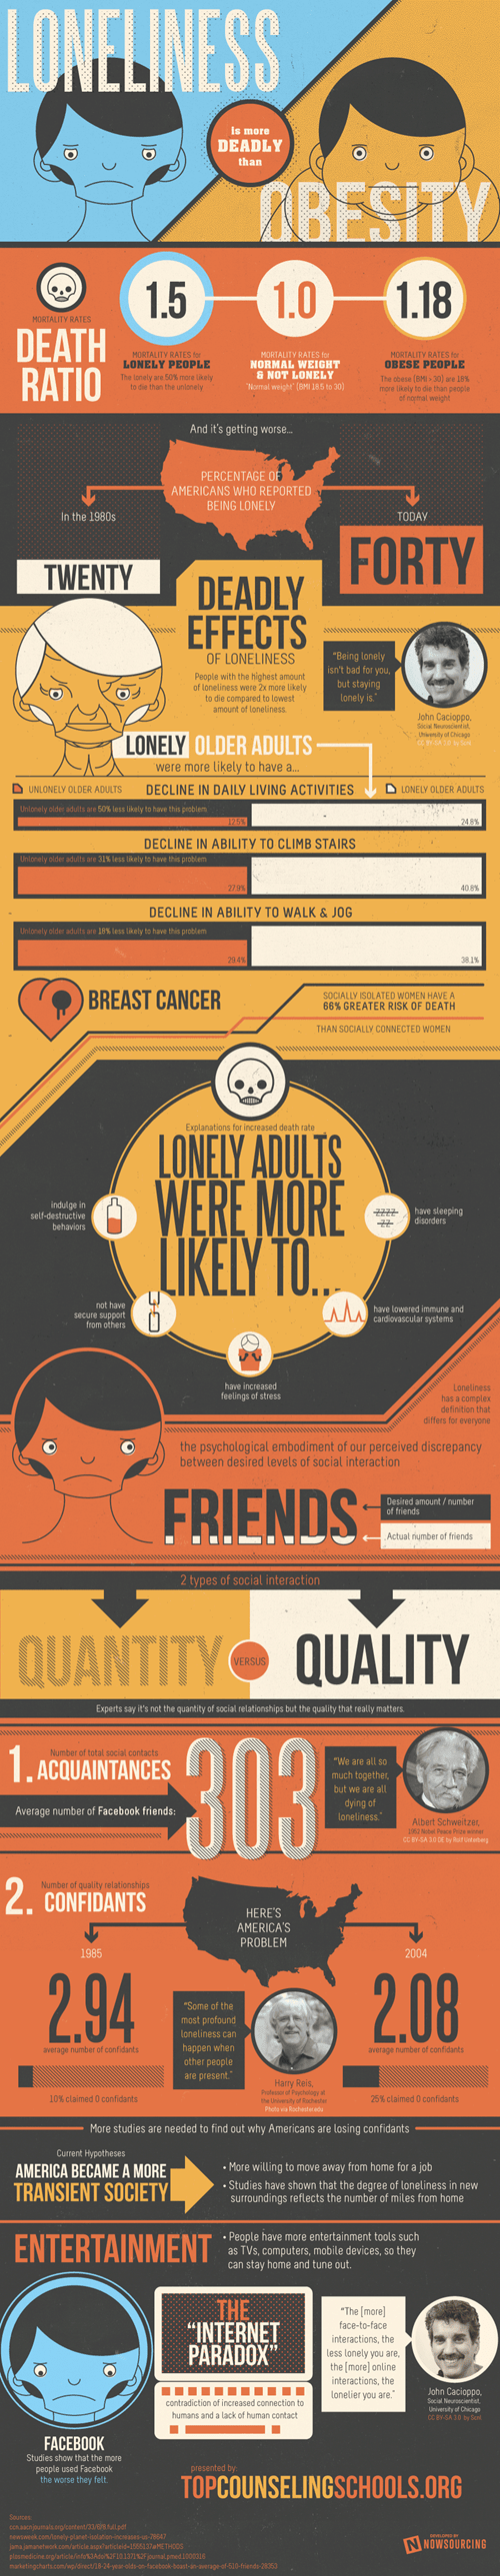 loneliness obesity infographic - 7997147392